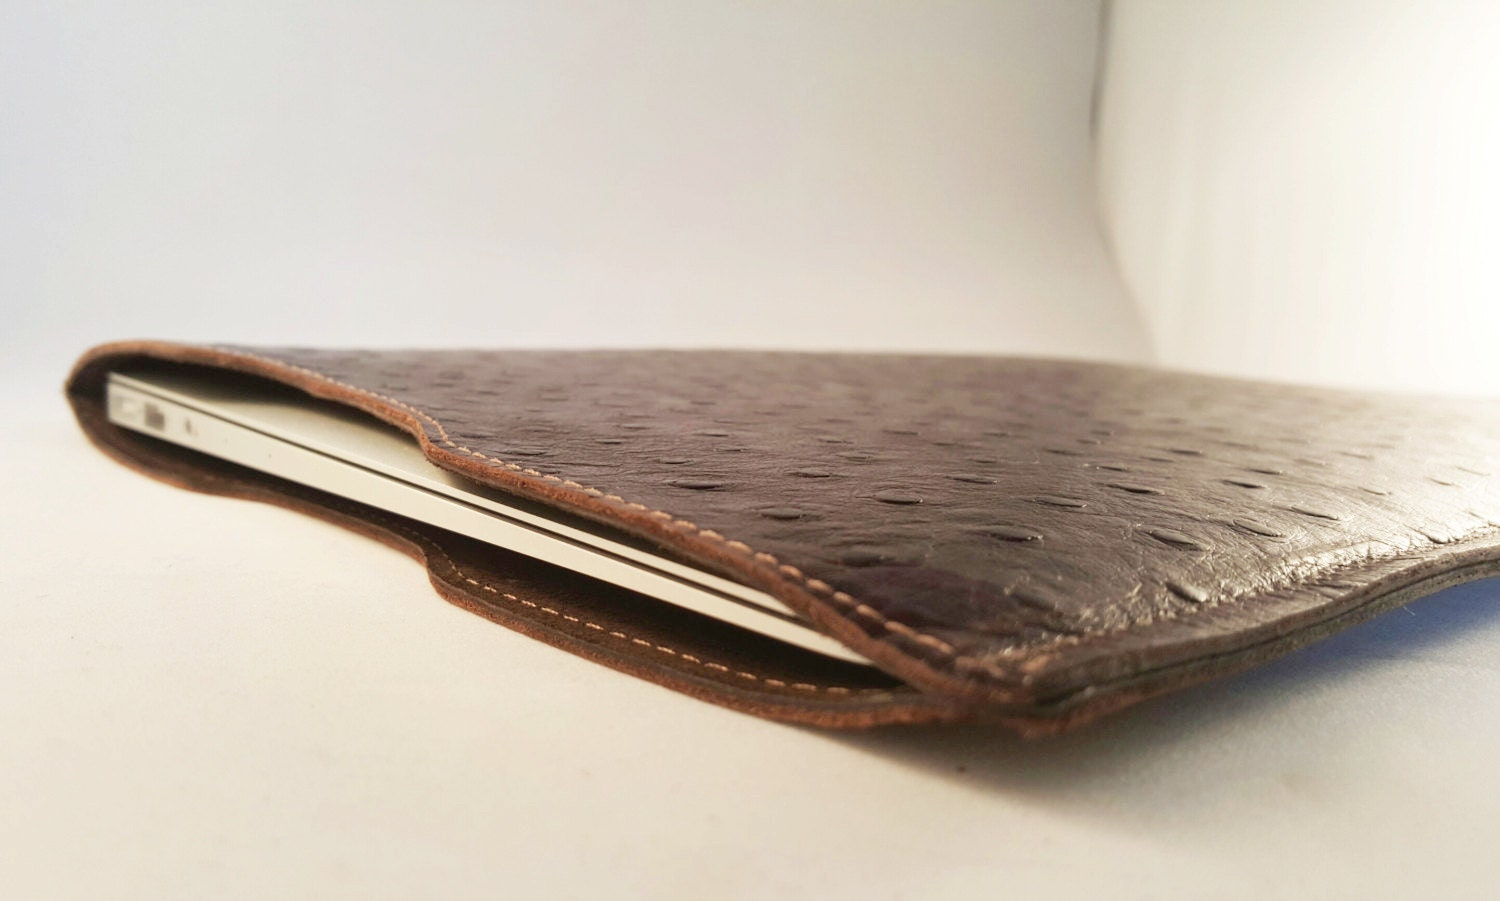 DORNEY Premium Leather and SuedeLined Macbook Air Laptop Sleeve 11 12 13